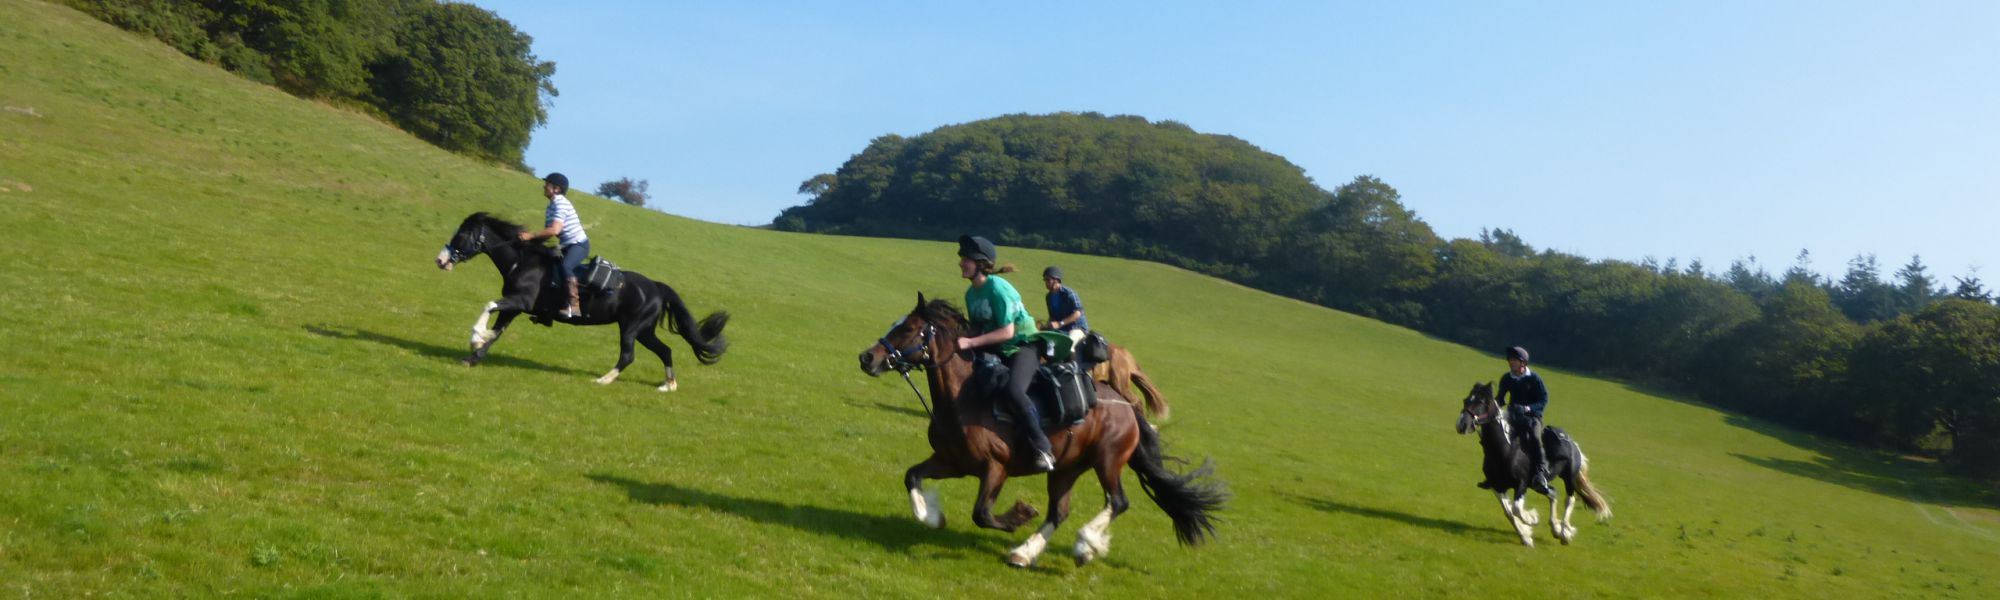 Horse riding in Welsh hills near Hay-on-Wye